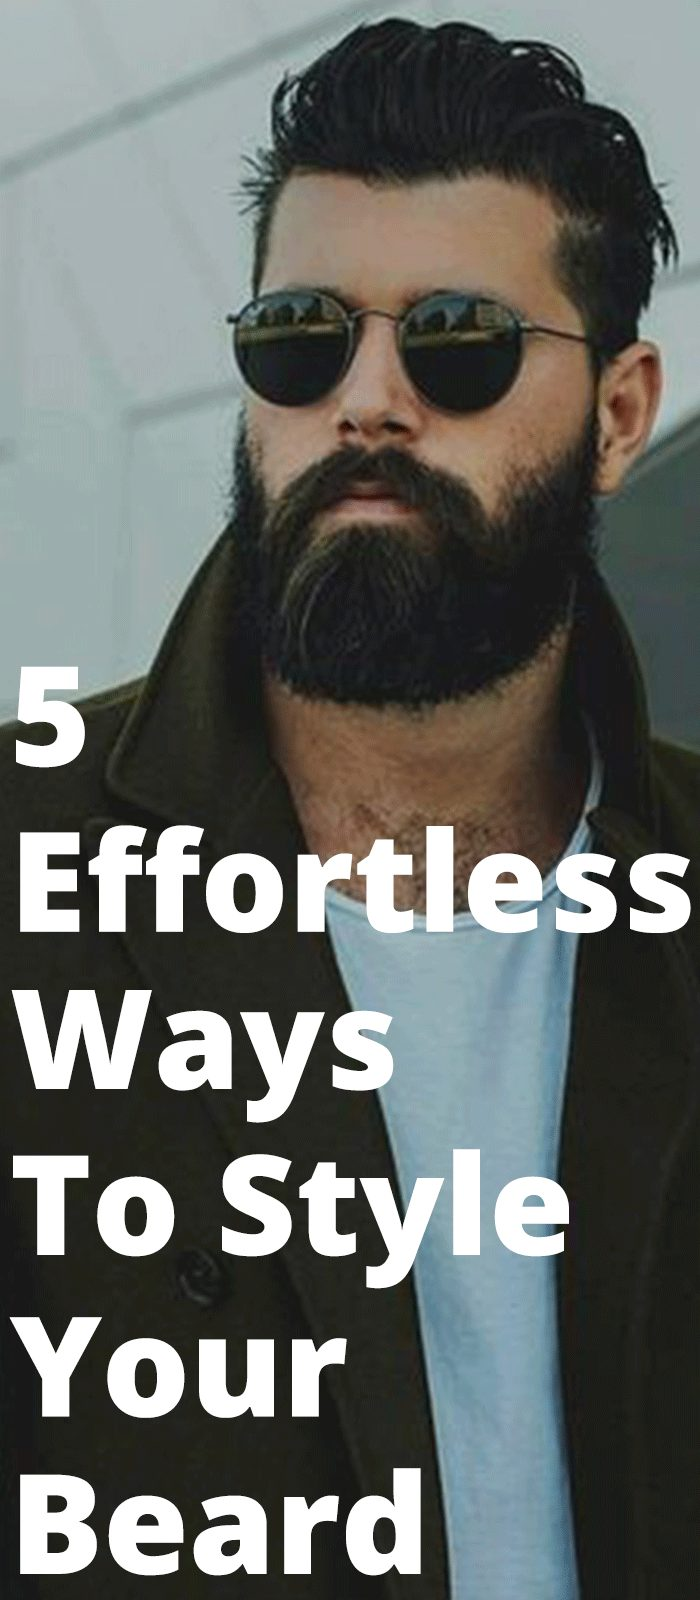 5 Effortless Ways To Style Your Beard